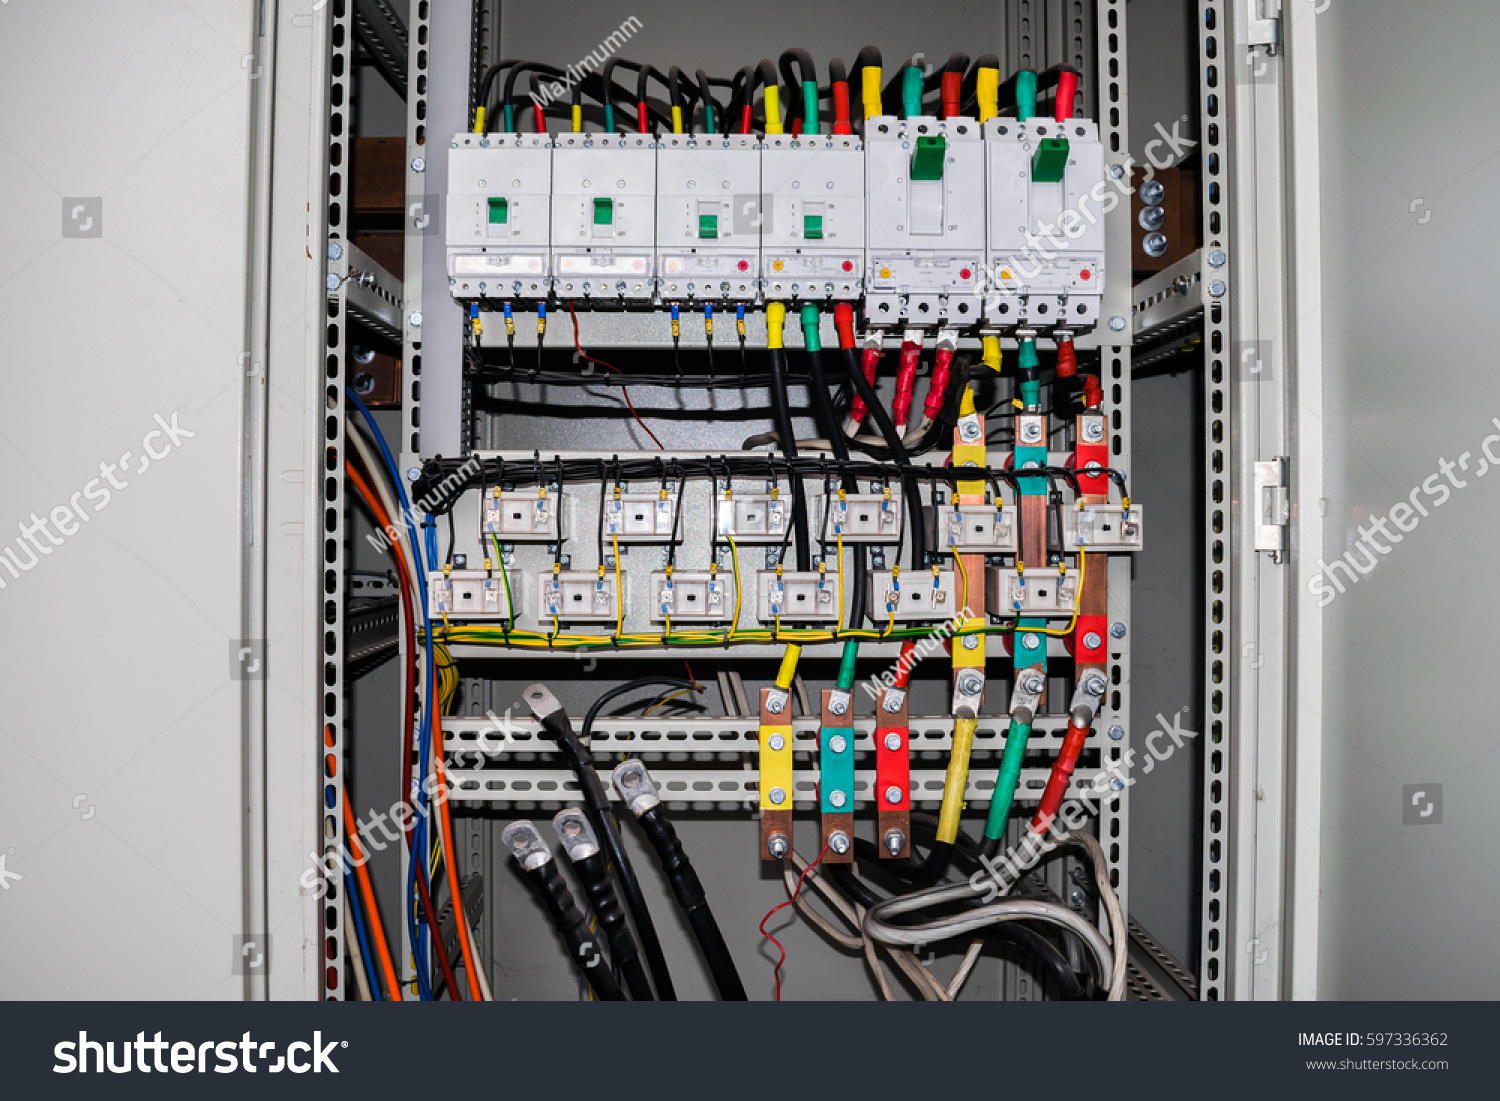 Electrical Box Contains Many Terminals Relays Stock Photo Edit Now Wiring The Wires And Switches